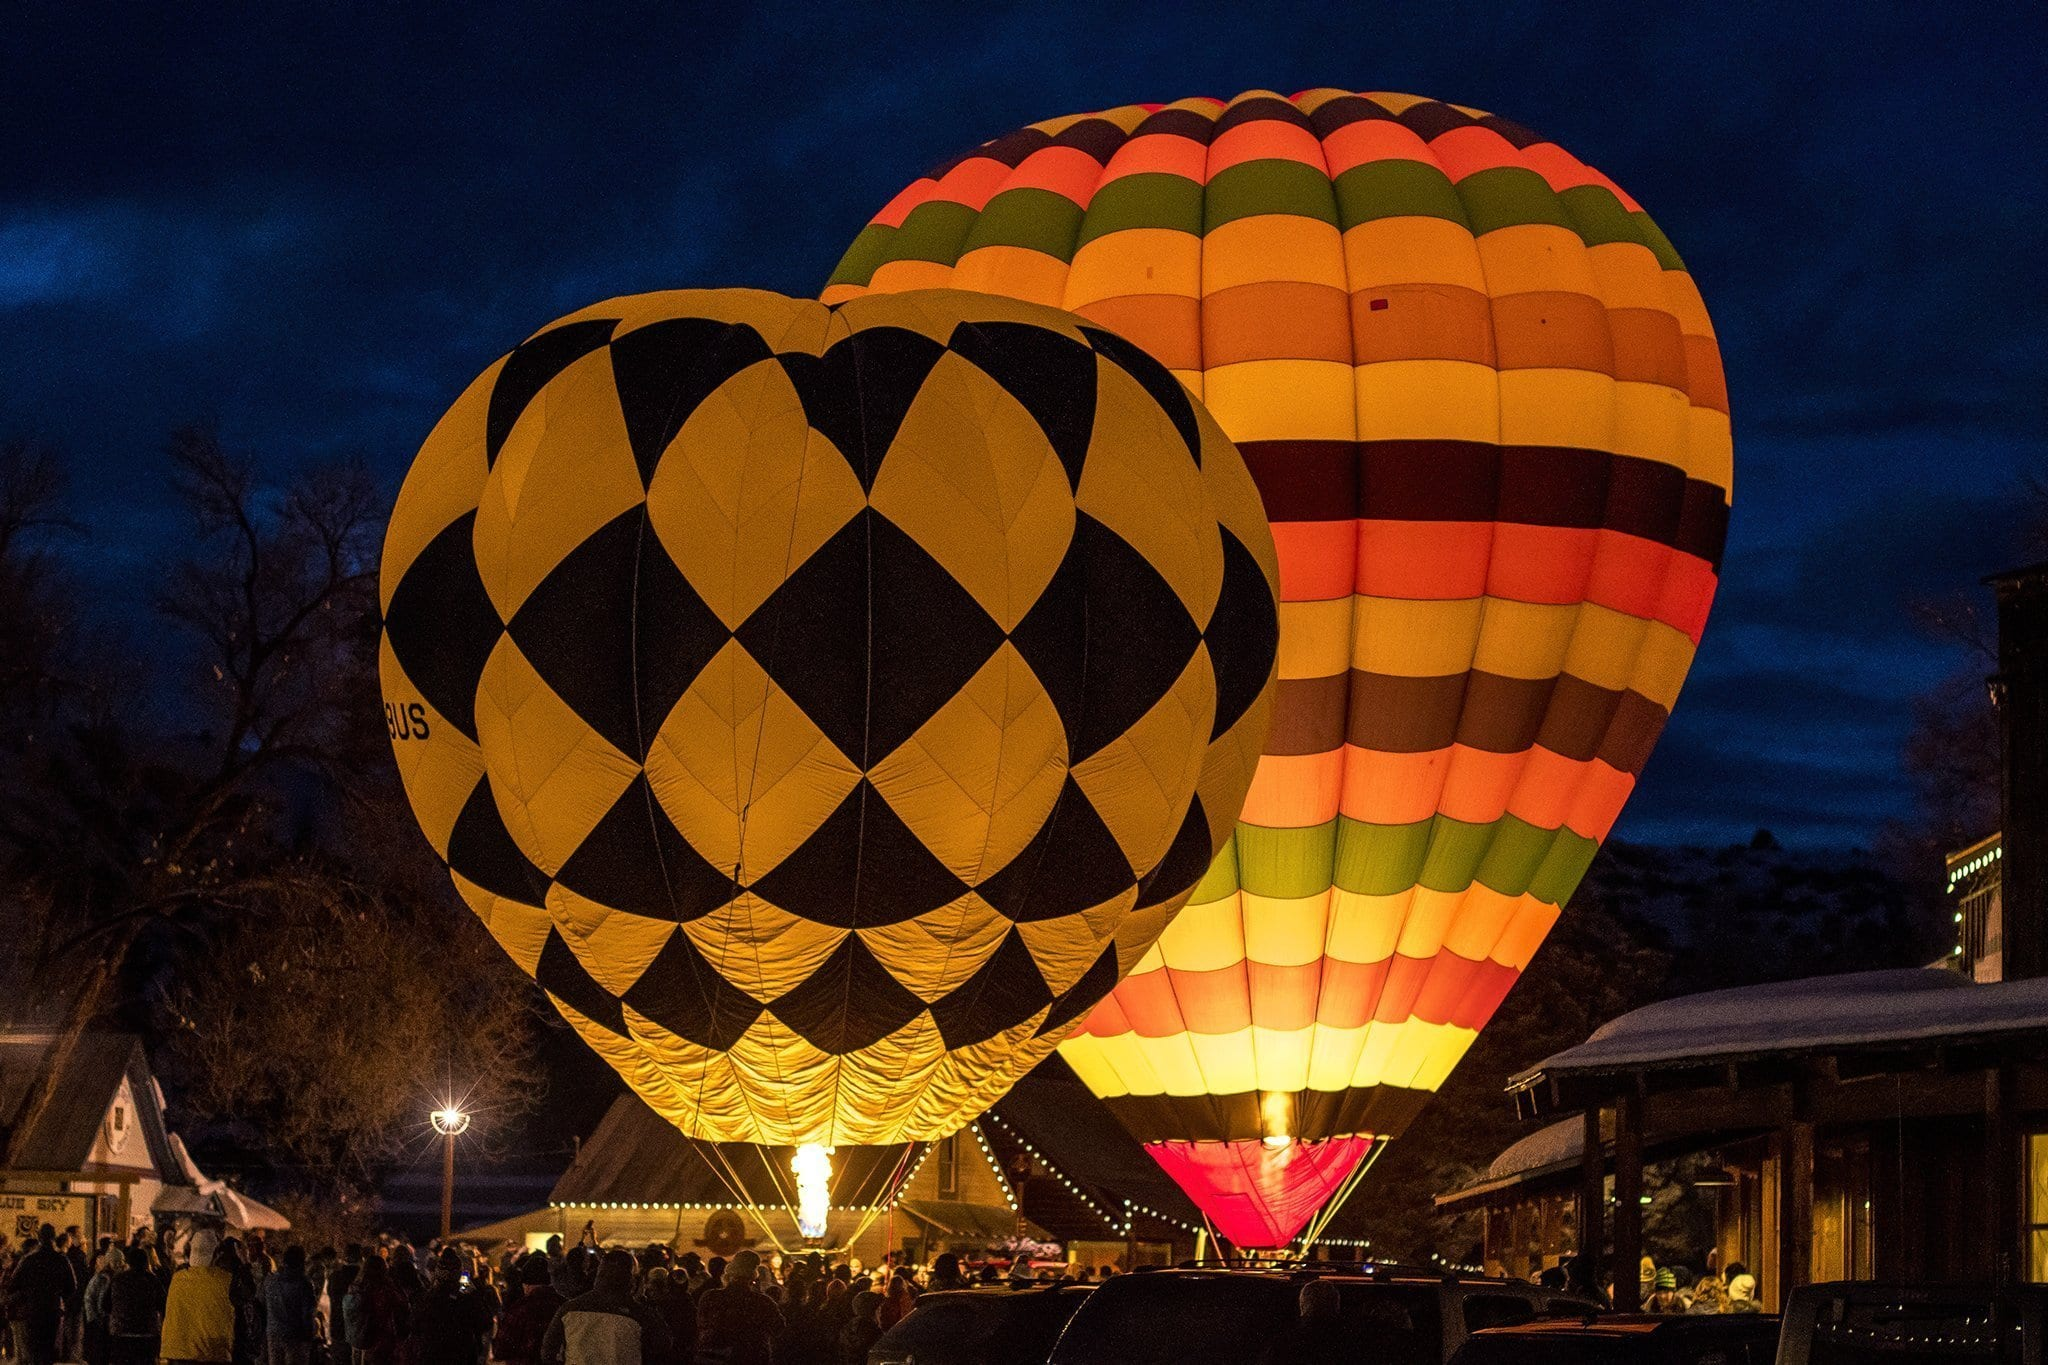 Winthrop Hot Air Balloon Festival